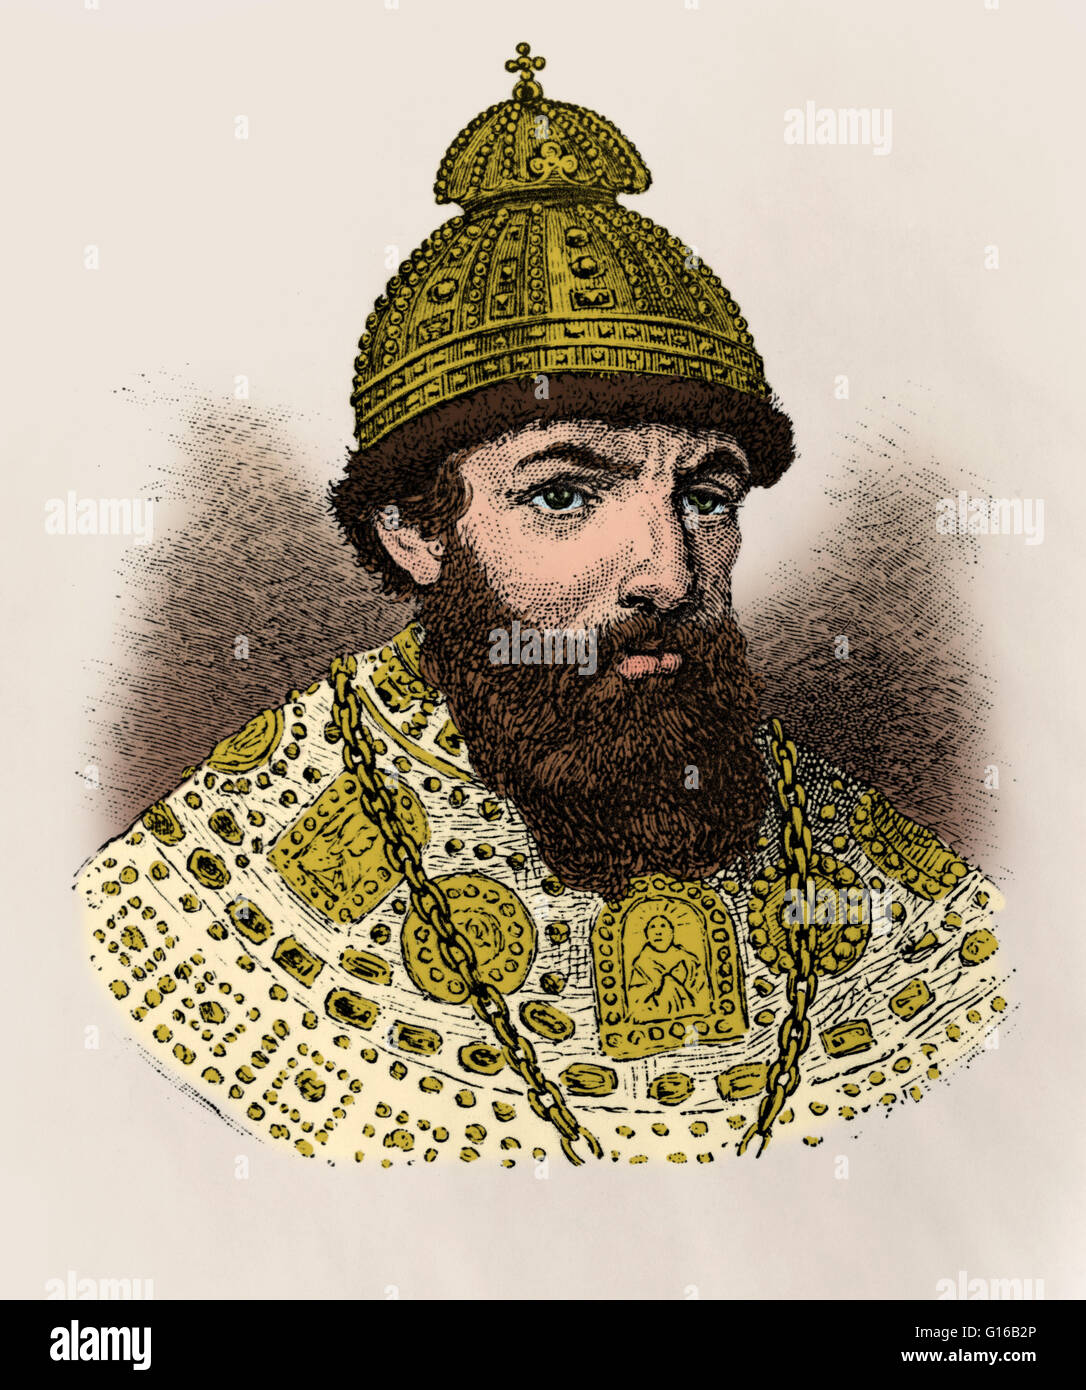 Ivan IV, Czar of Russia. Ivan IV Vasilyevich (August 25, 1530 - March 28, 1584) was Grand Prince of Moscow from - Stock Image